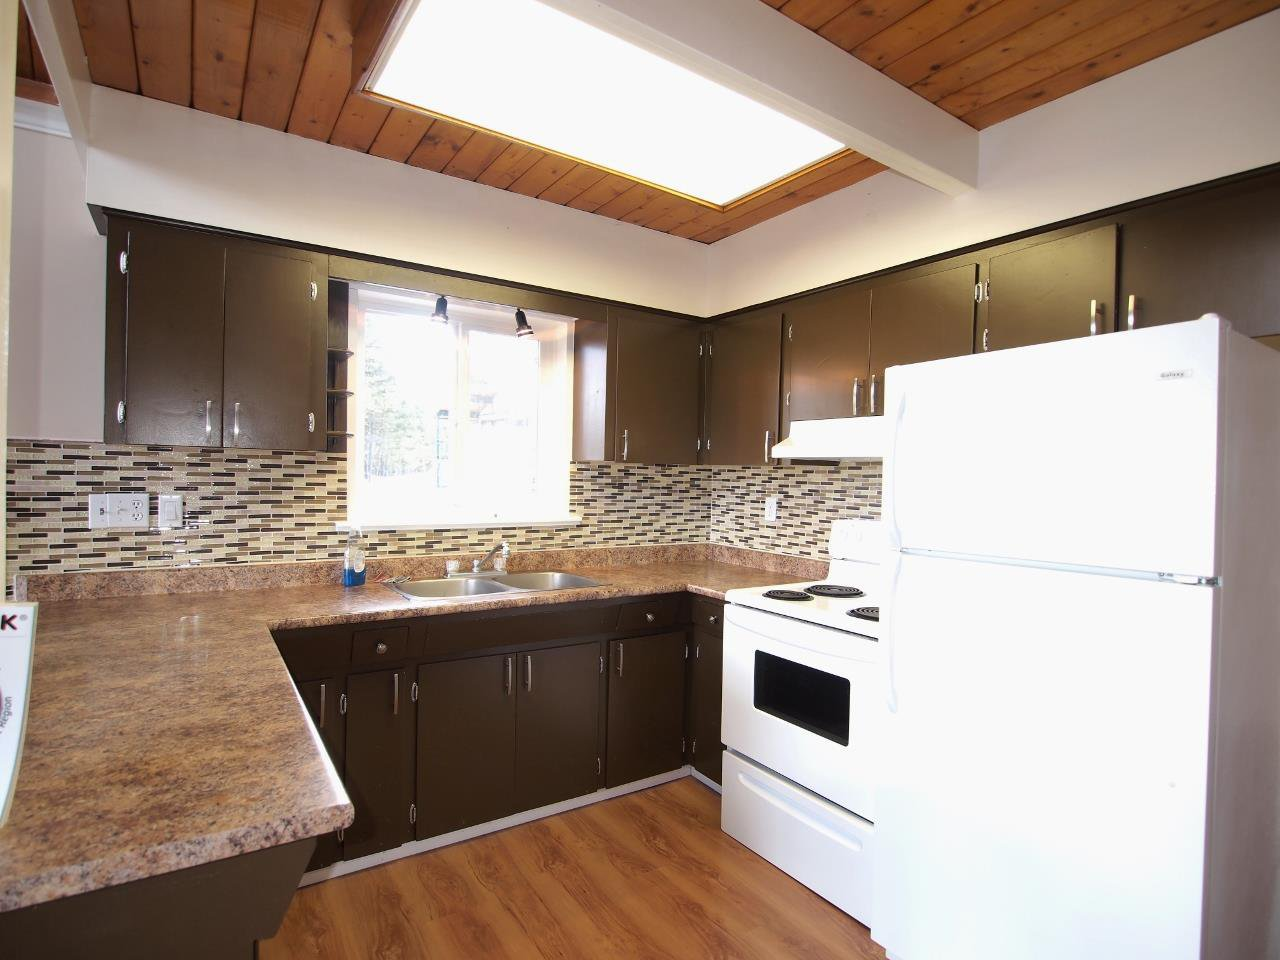 Photo 3: Photos: 4949 KYLLO Drive in 108 Mile Ranch: 108 Ranch House for sale (100 Mile House (Zone 10))  : MLS®# R2014339